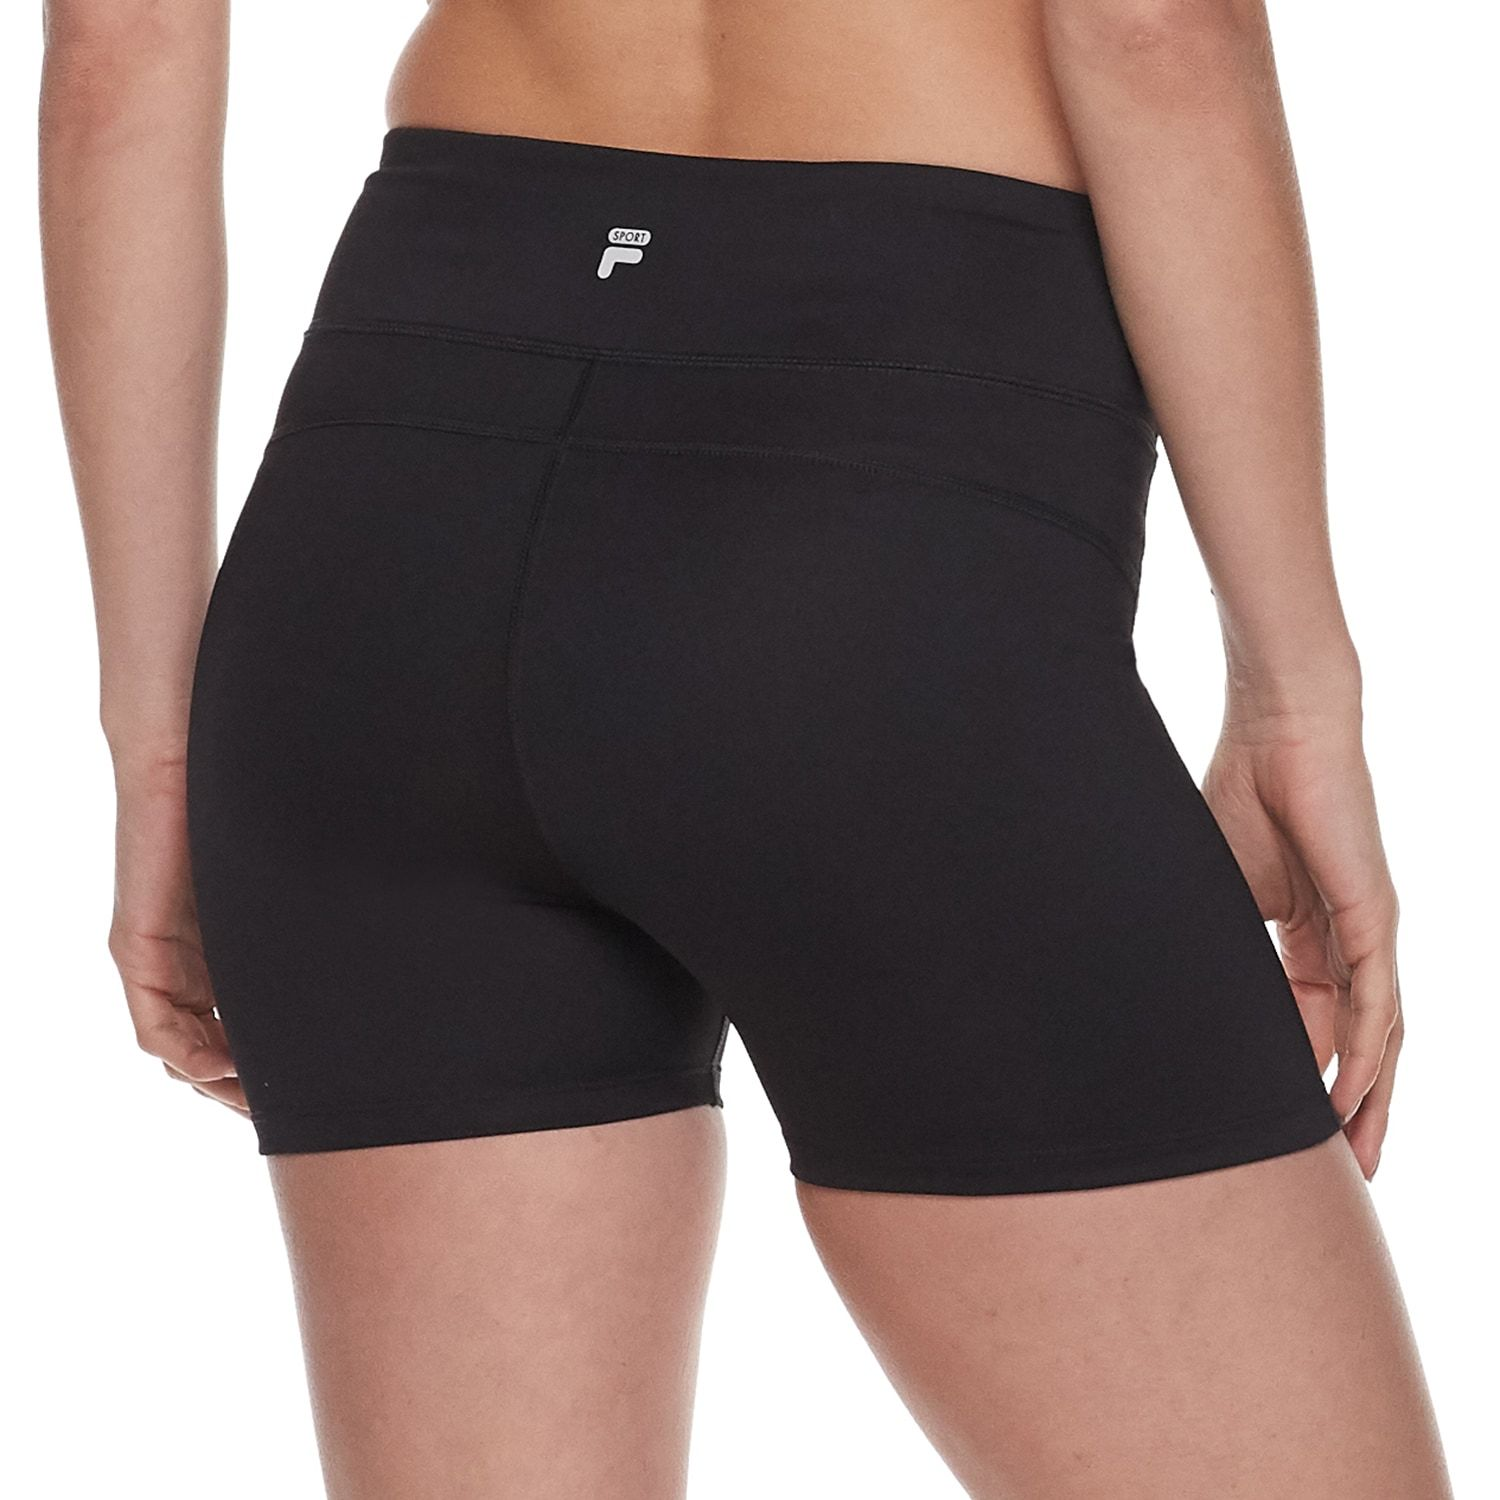 751e7006 Women's FILA SPORT? High Waisted Core Bike Shorts #Affiliate #SPORT ...